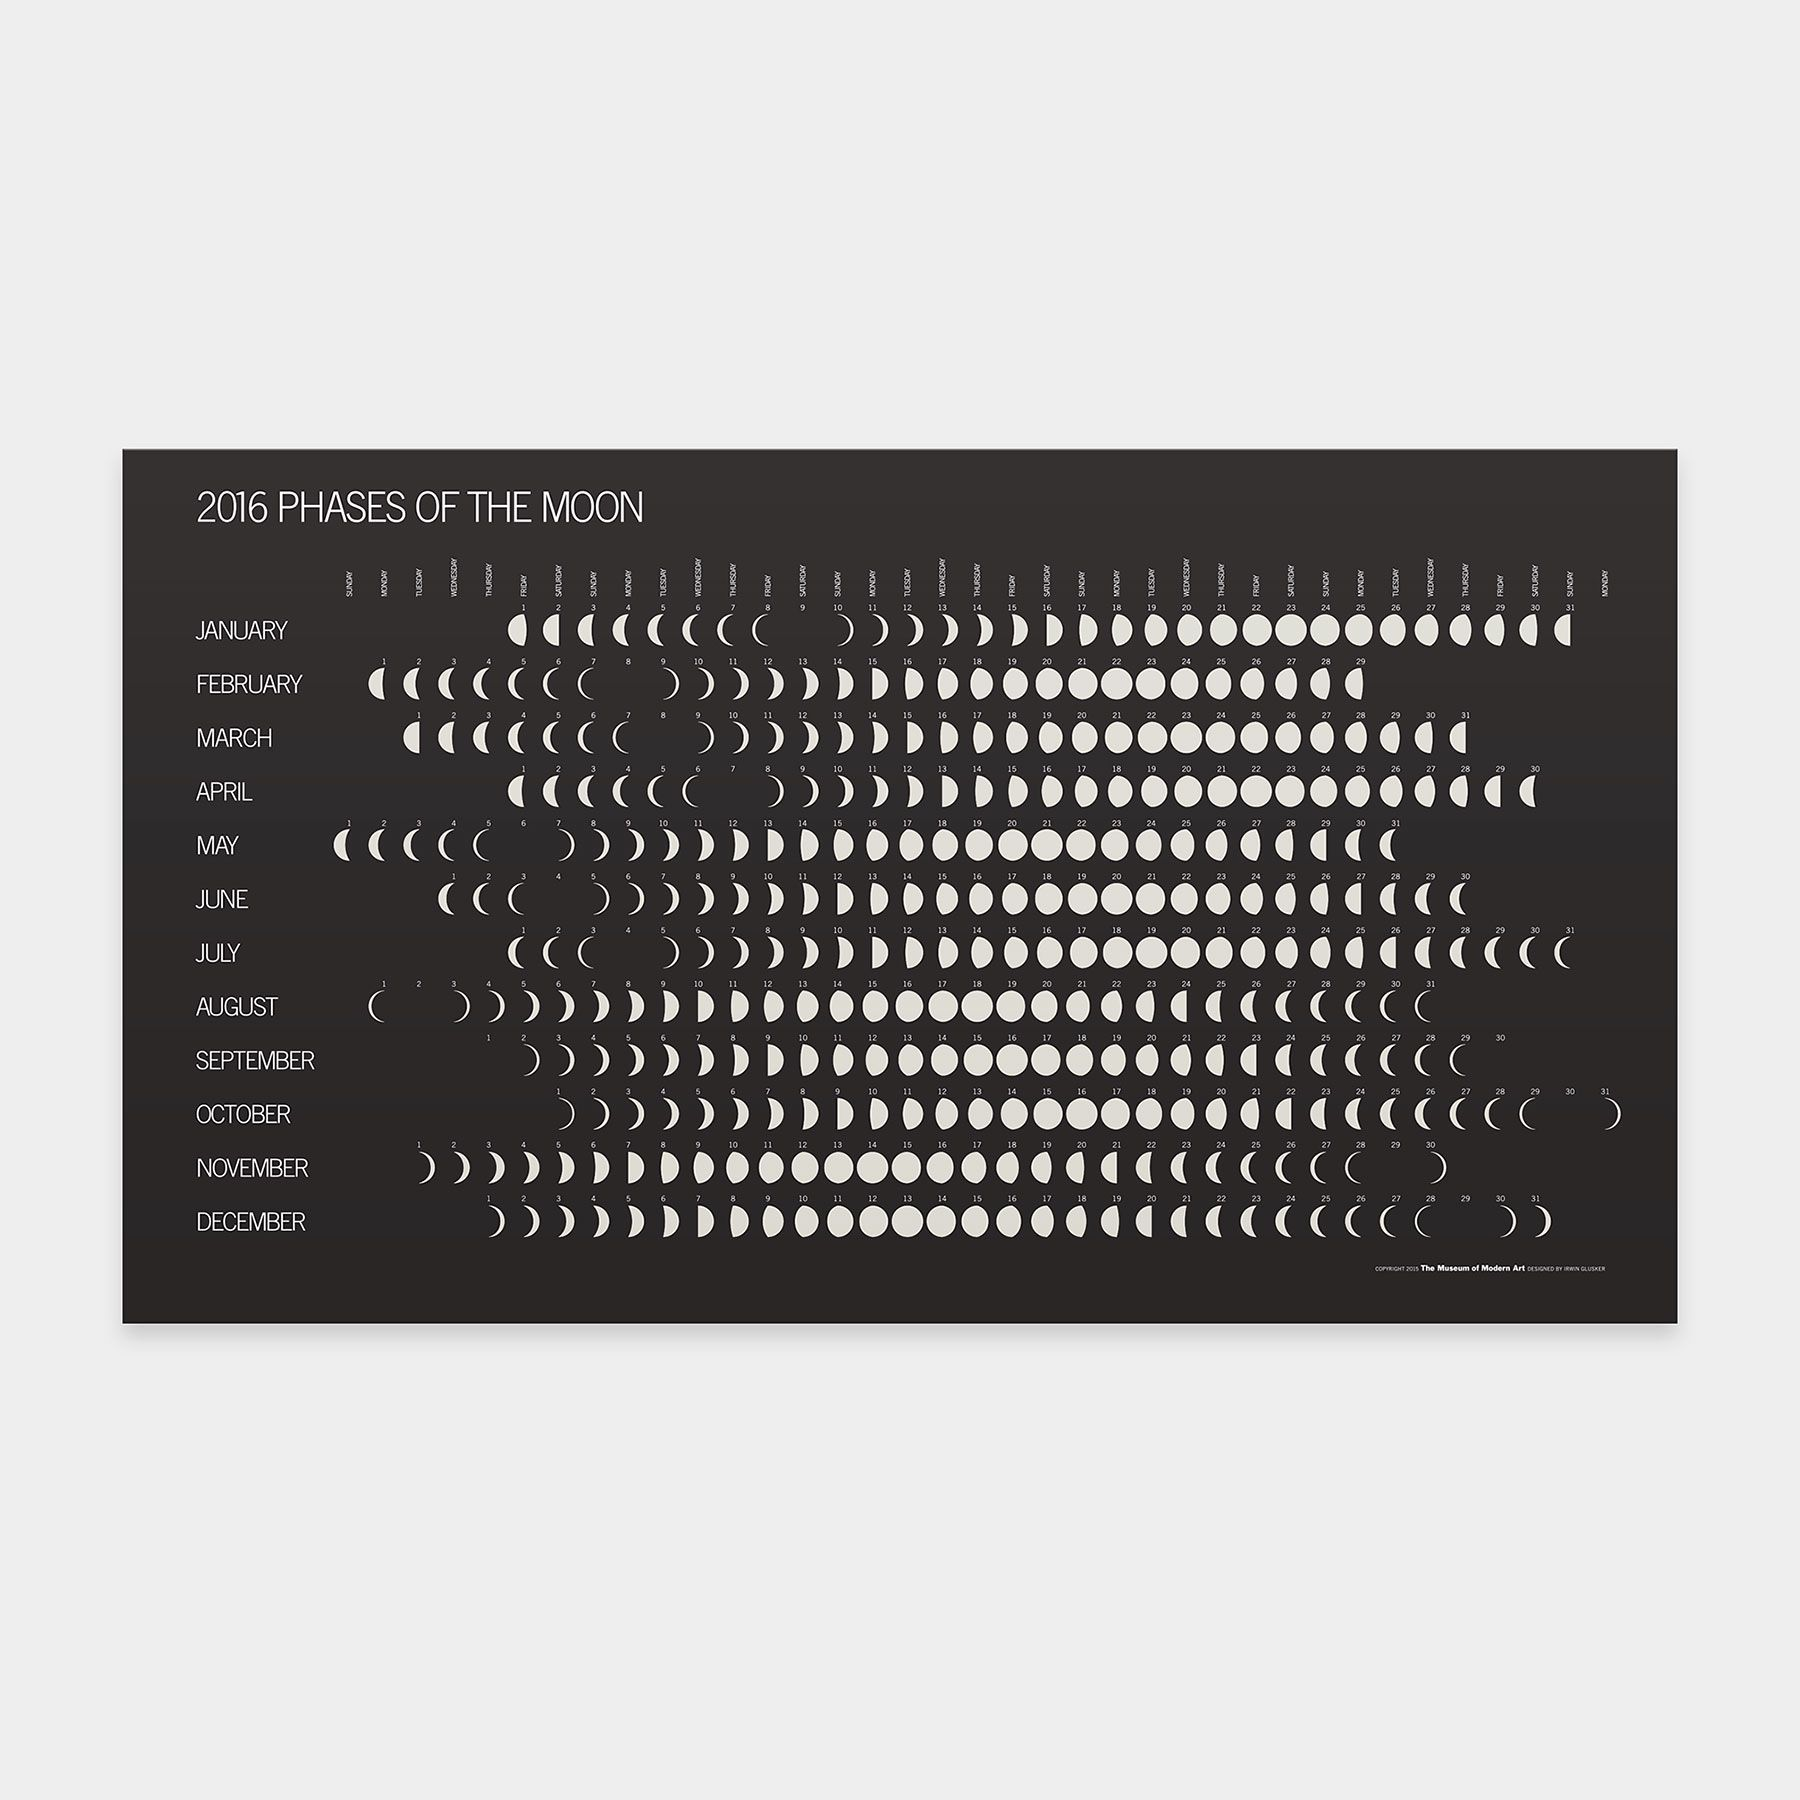 Calendar Typography Tips : Phases of the moon calendar by irwin glusker